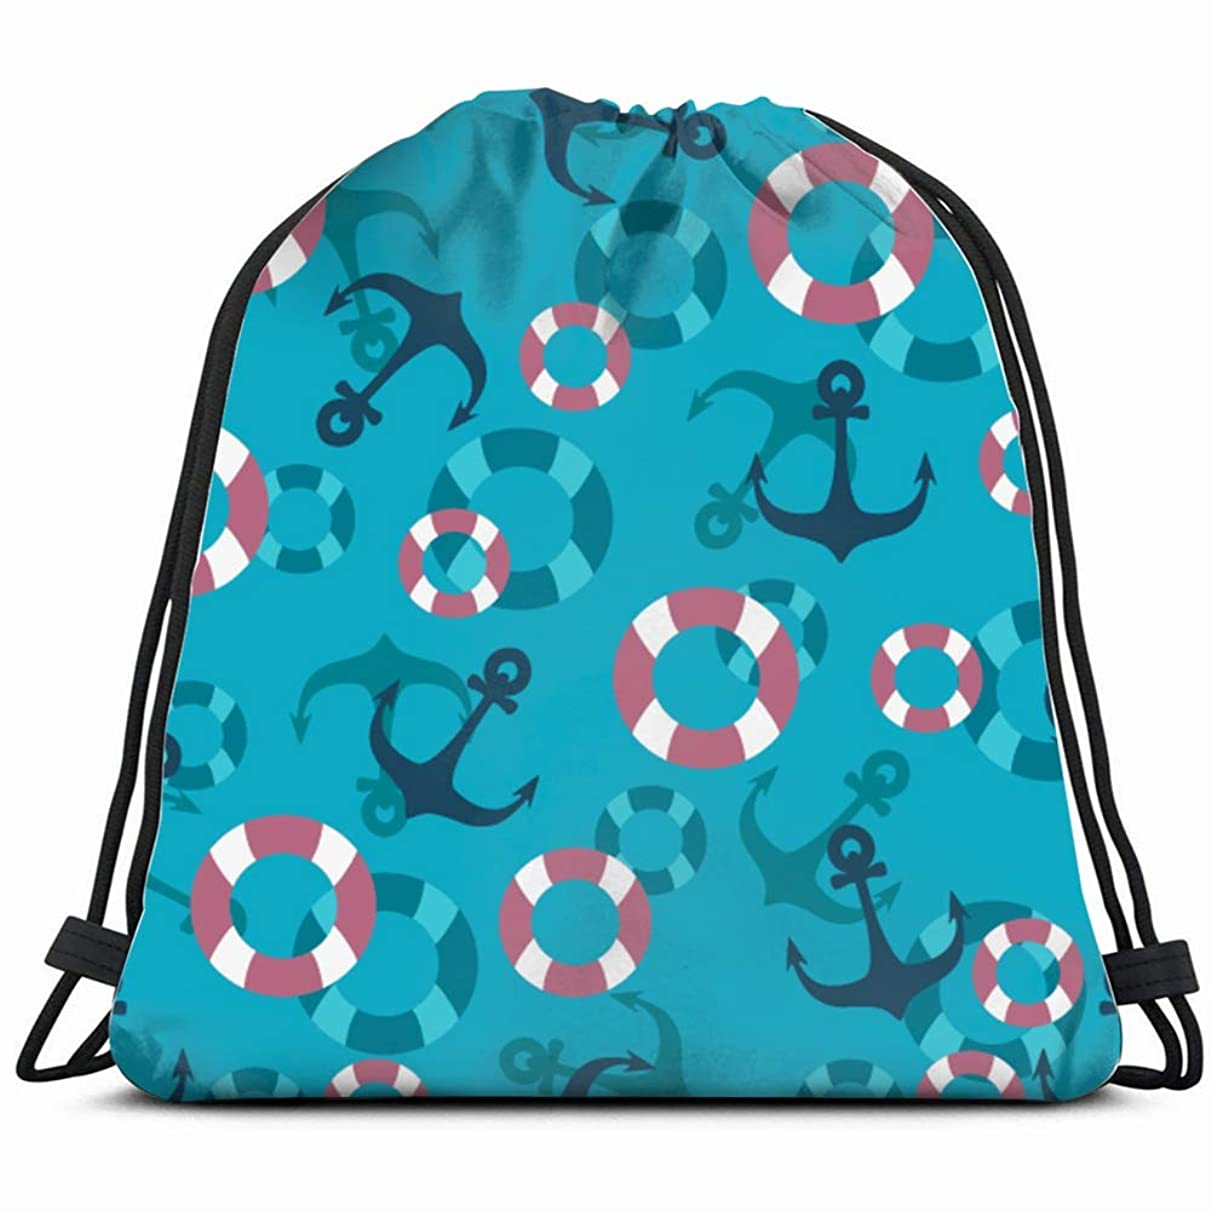 anchors buoys marine style anchor objects Drawstring Backpack Gym Sack Lightweight Bag Water Resistant Gym Backpack for Women&Men for Sports,Travelling,Hiking,Camping,Shopping Yoga